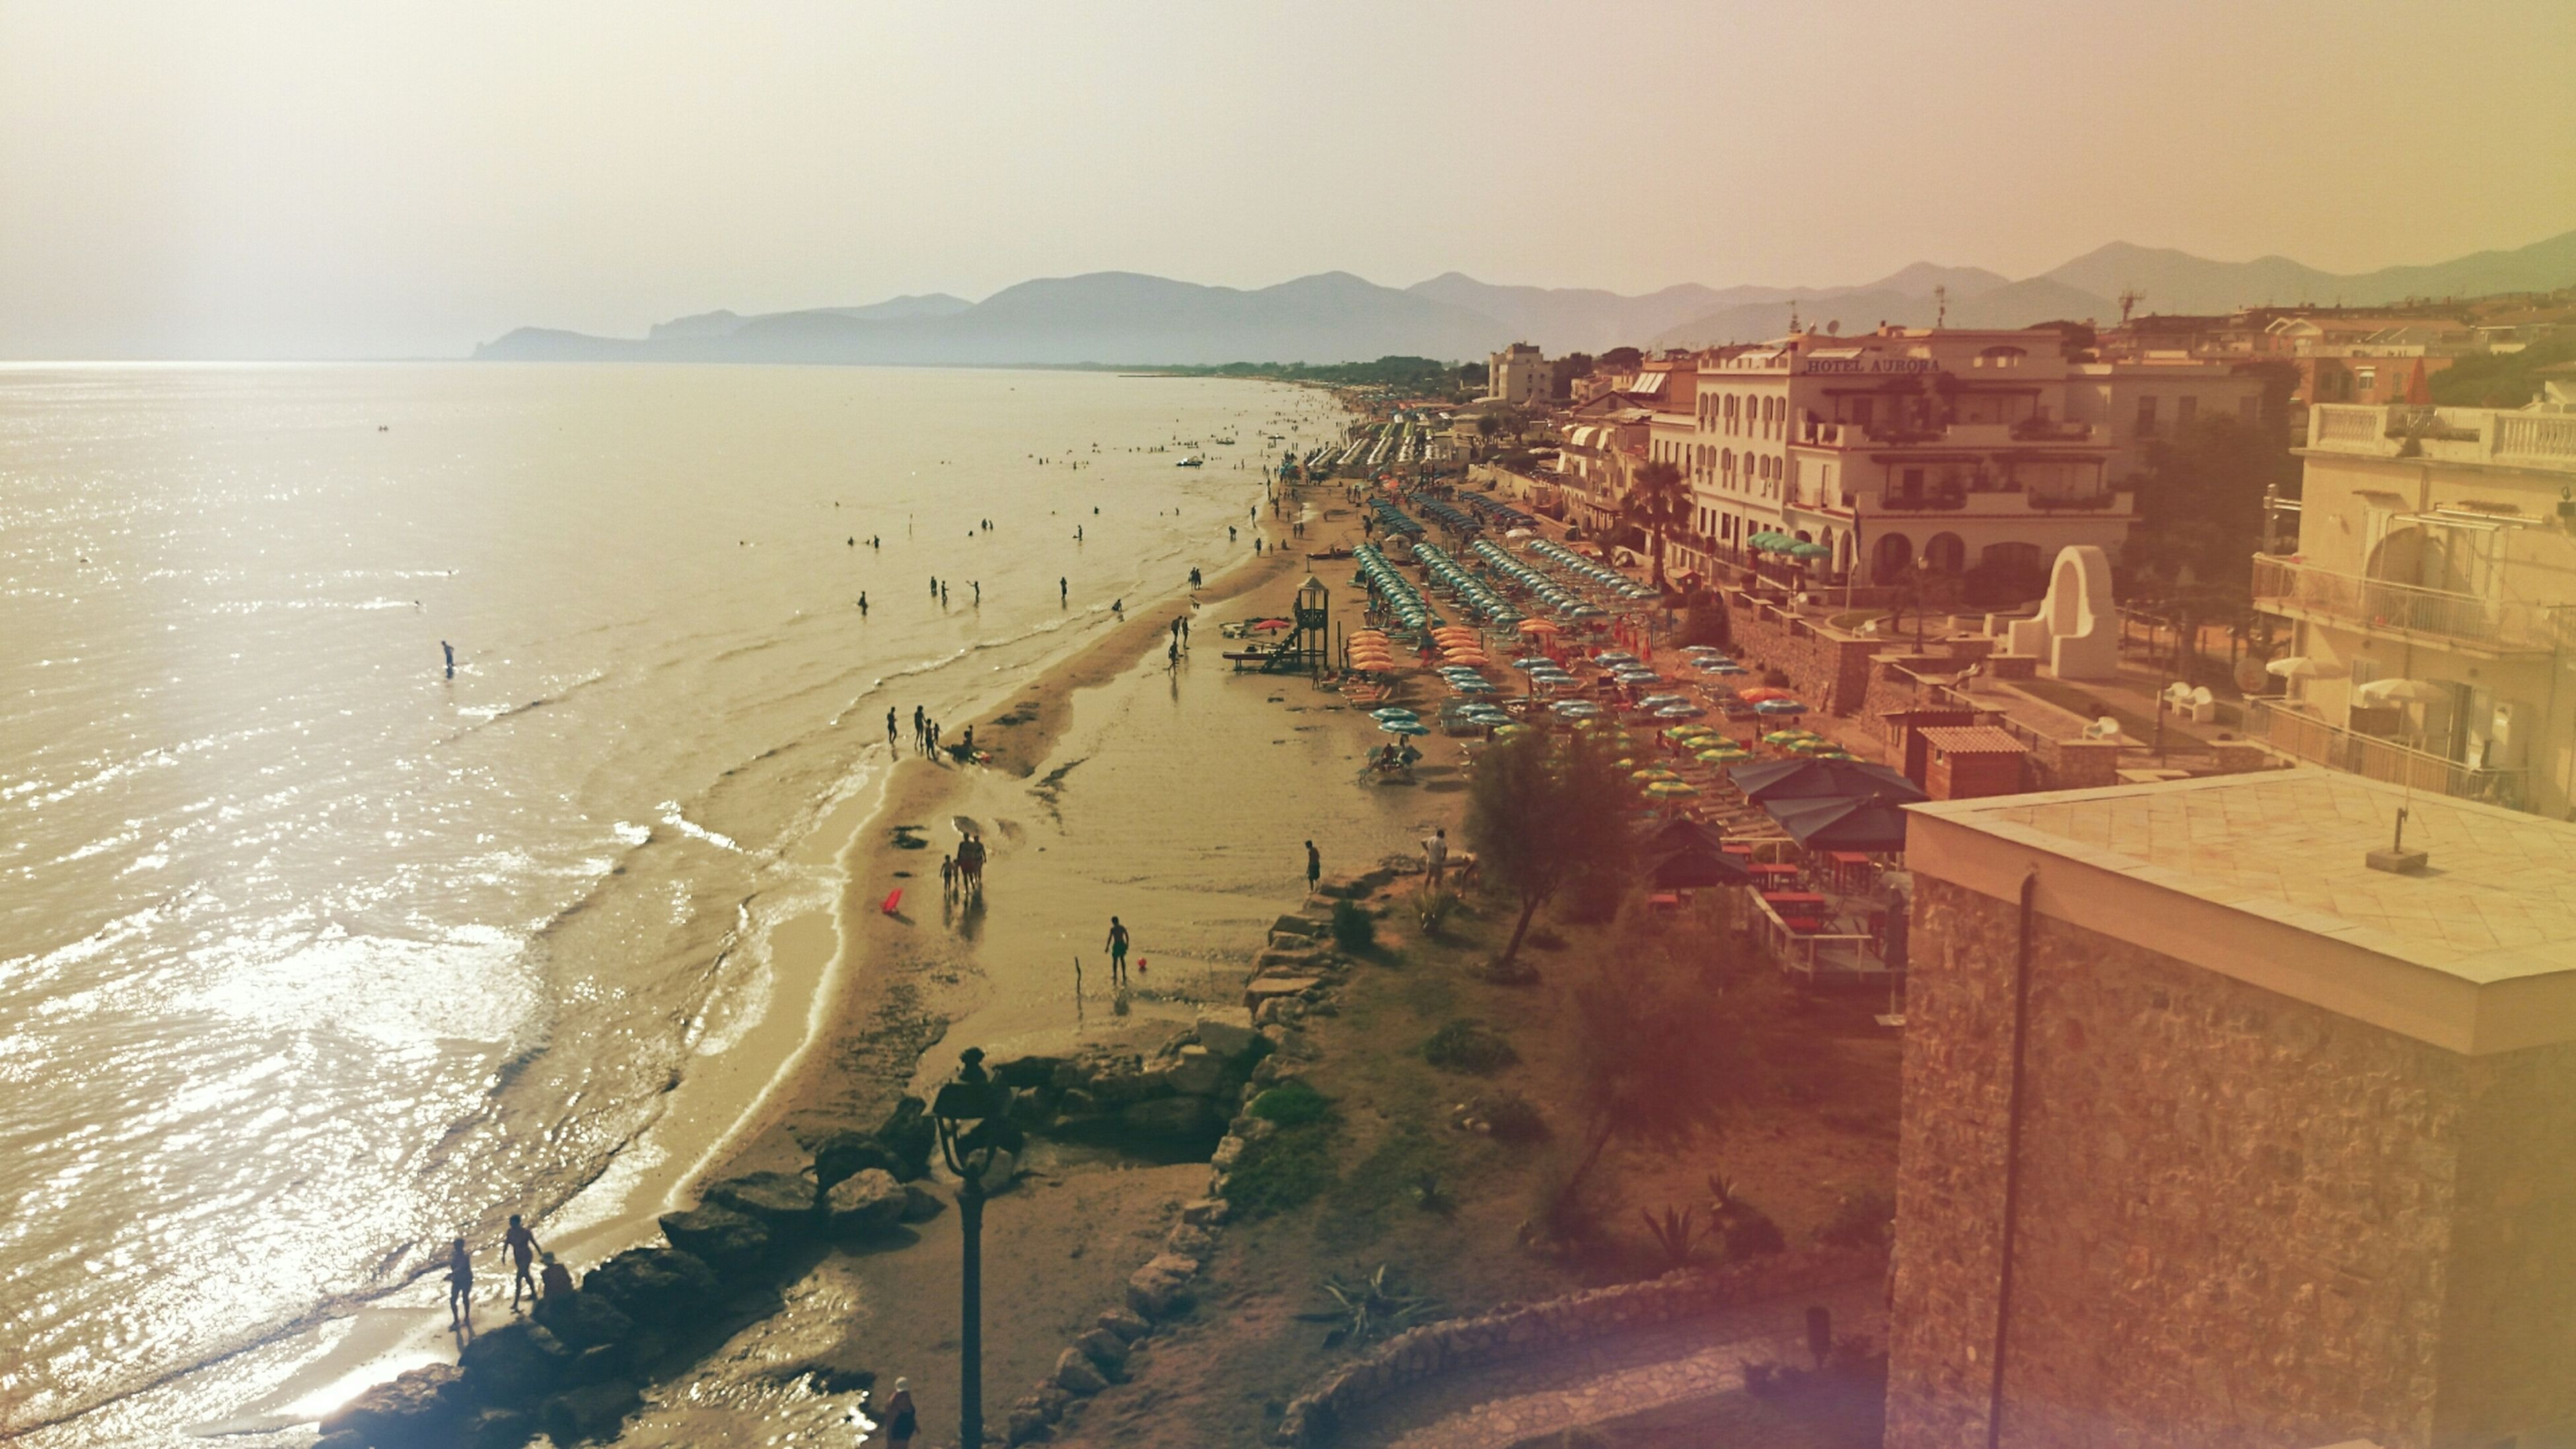 sea, water, beach, sand, shore, built structure, horizon over water, clear sky, architecture, building exterior, high angle view, incidental people, scenics, nature, sky, coastline, sunlight, vacations, tranquility, mountain